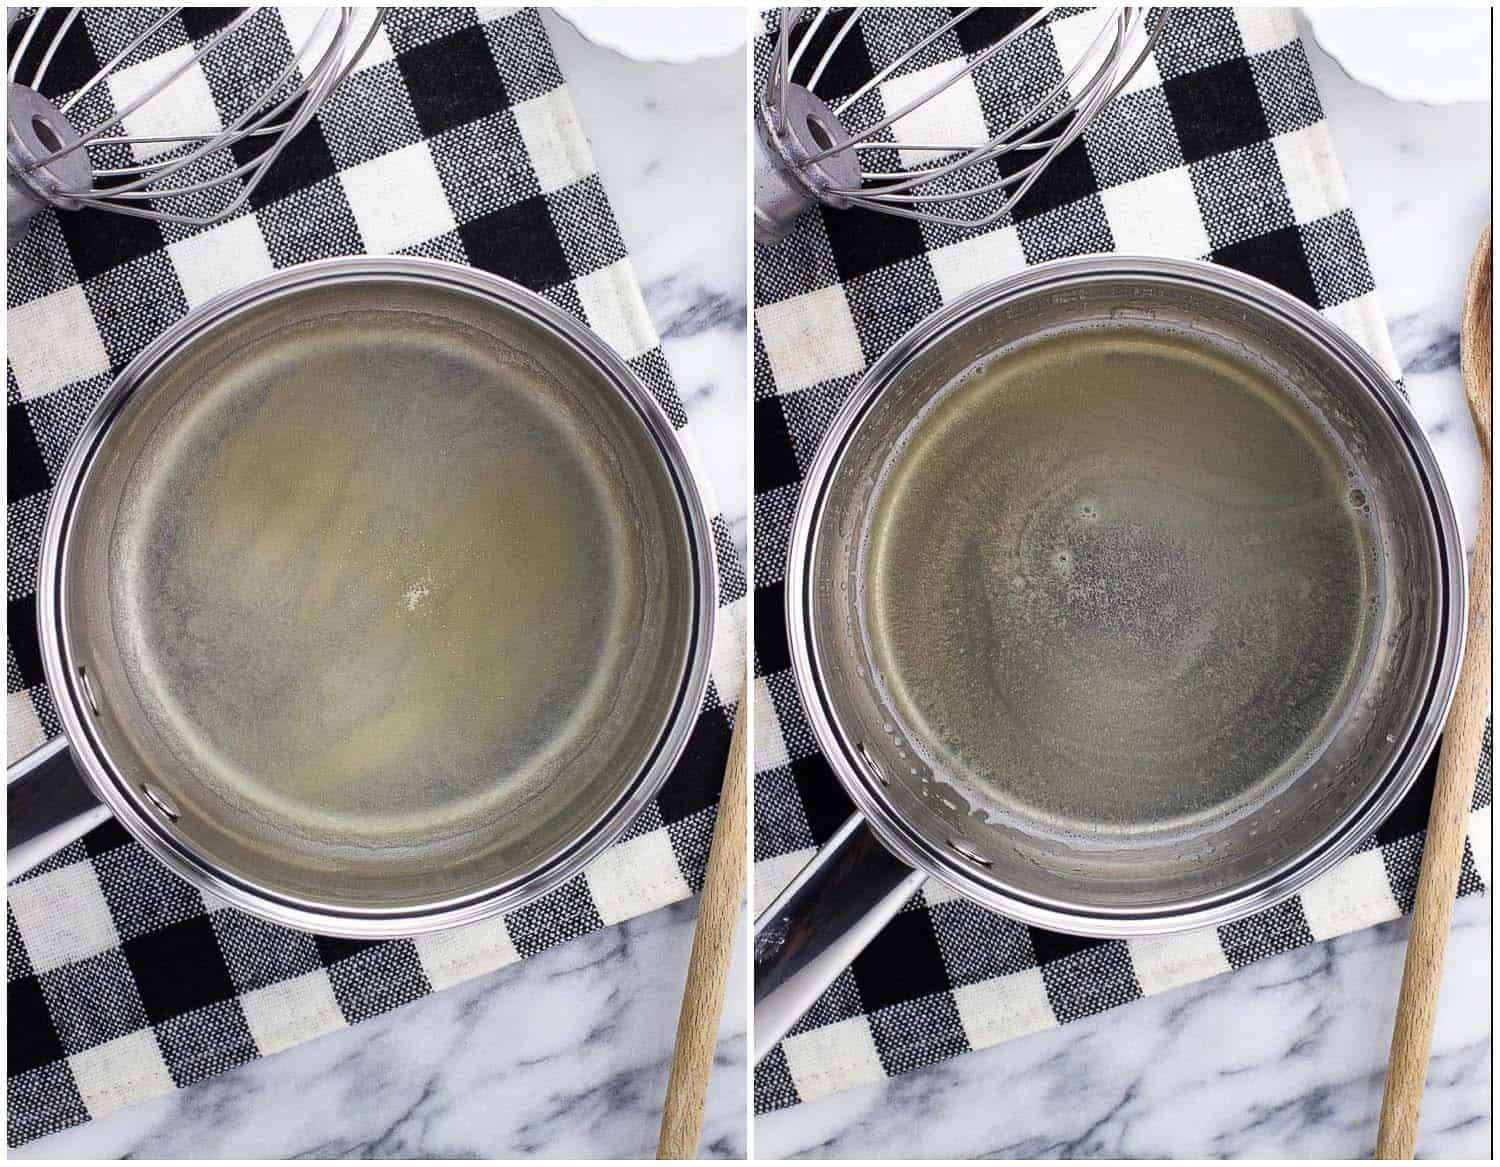 Gelatin sprinkled in hot water in a saucepan (left) and after being dissolved (right).